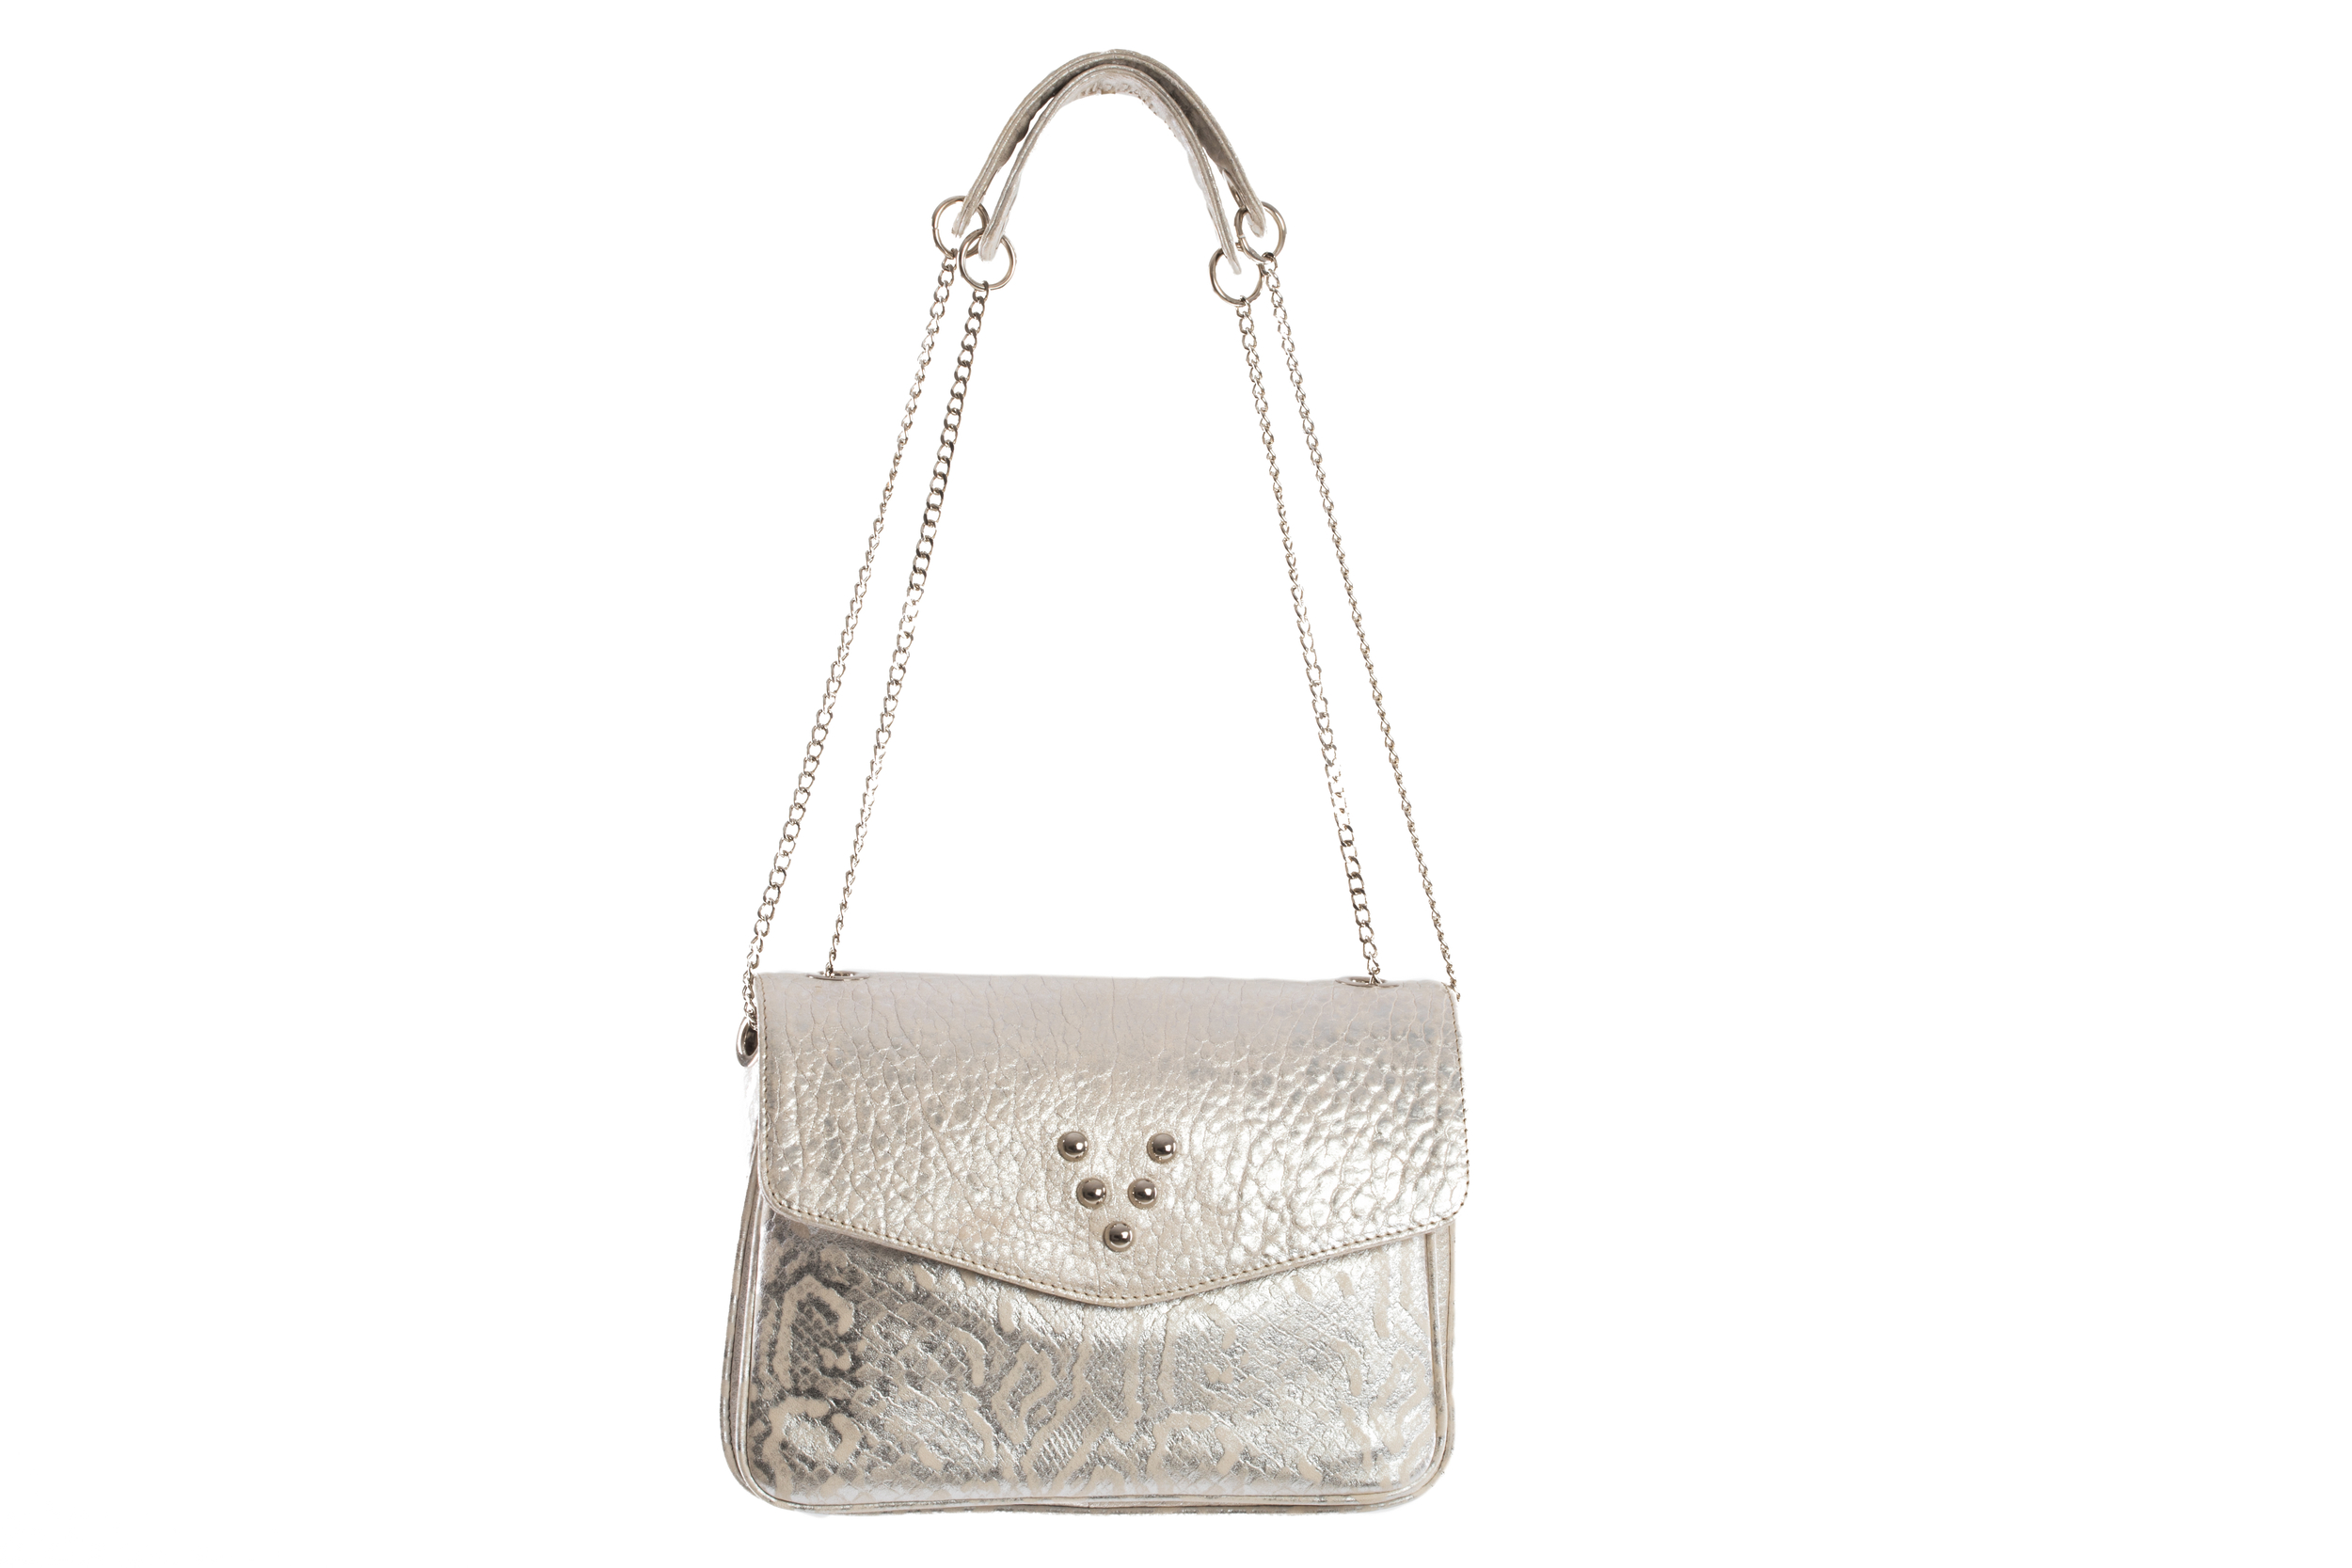 SAC CHACHA WHITE ARGENT MIX - Nouvelle Collection